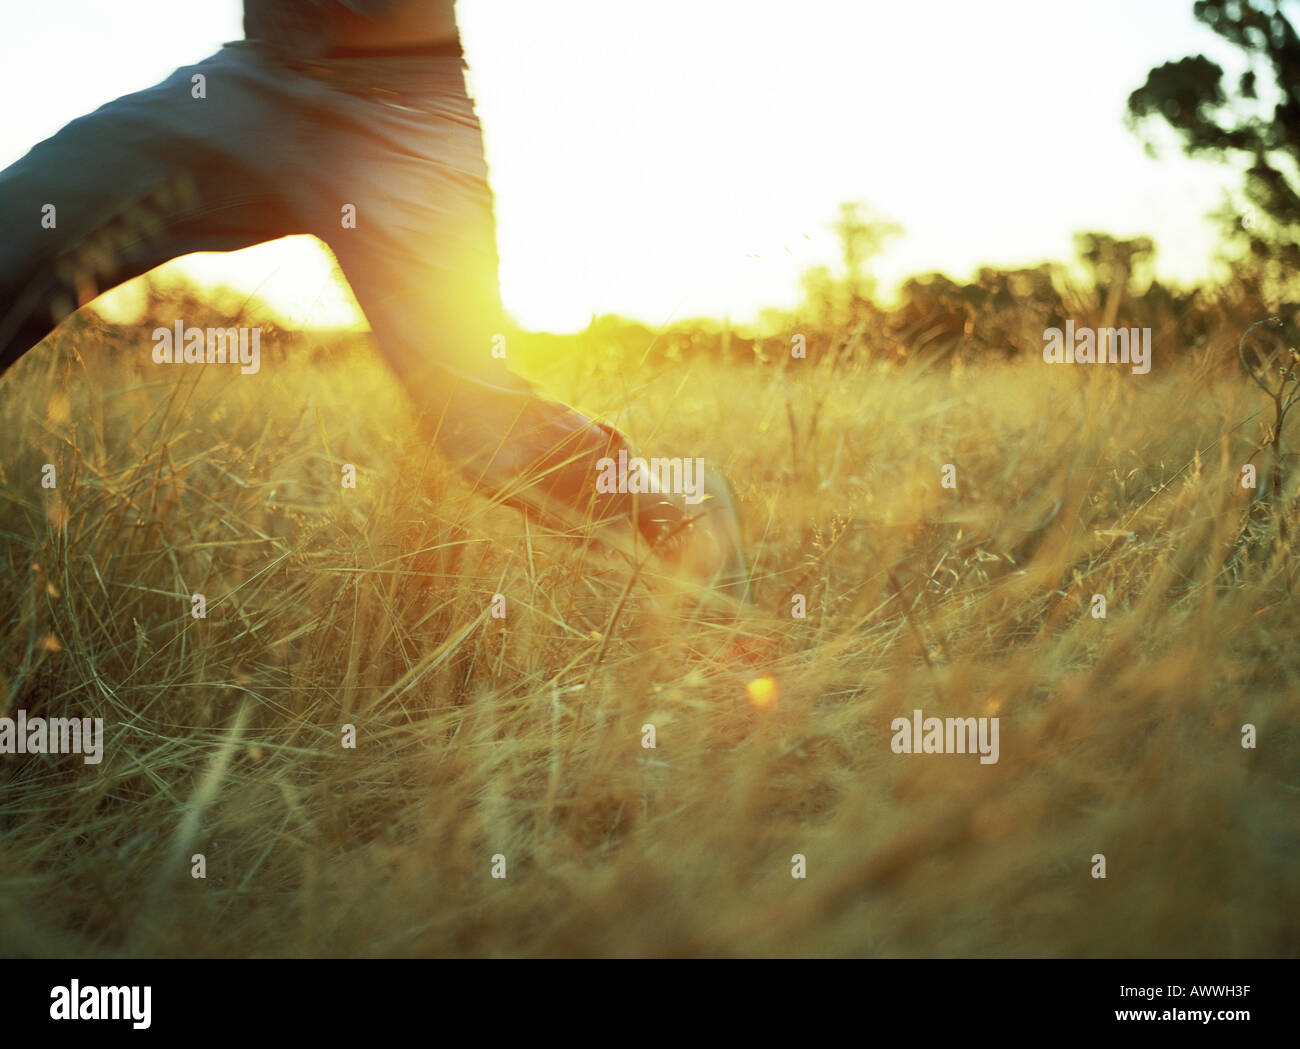 Personne dans la zone d'herbes hautes, low section Photo Stock